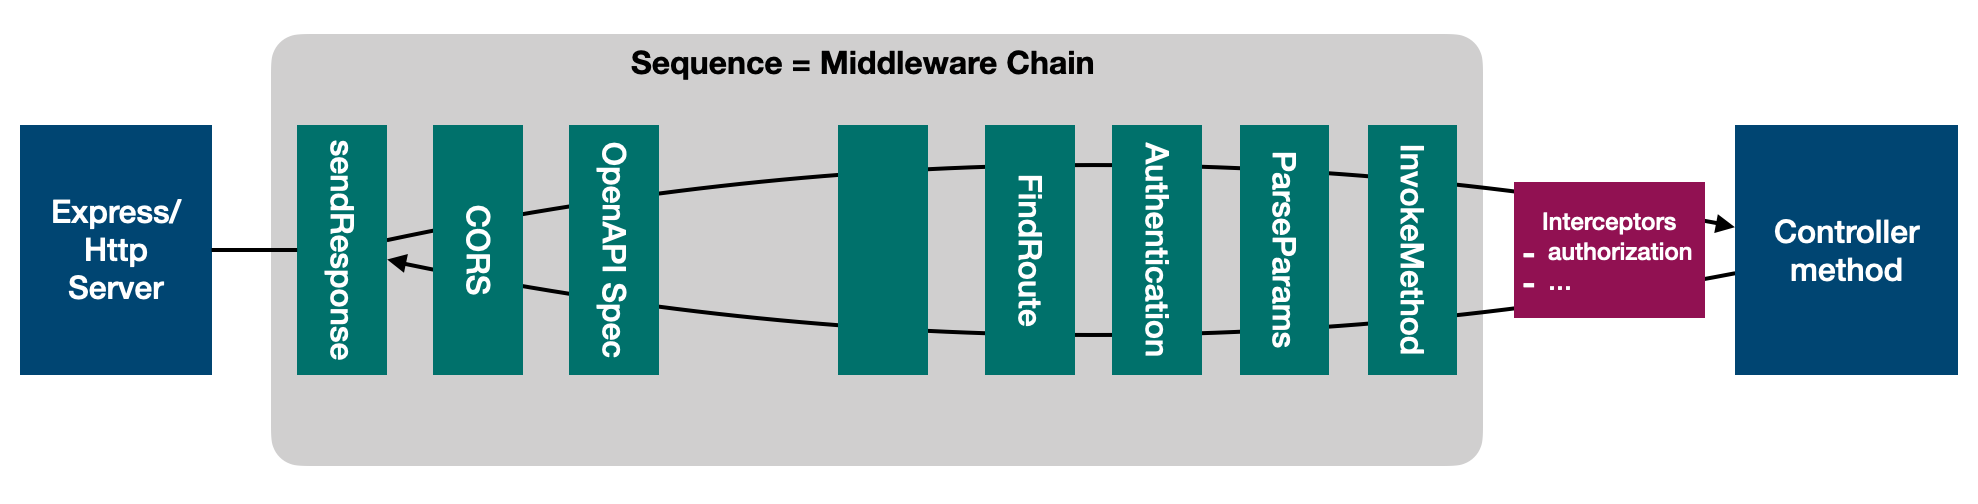 middleware-sequence